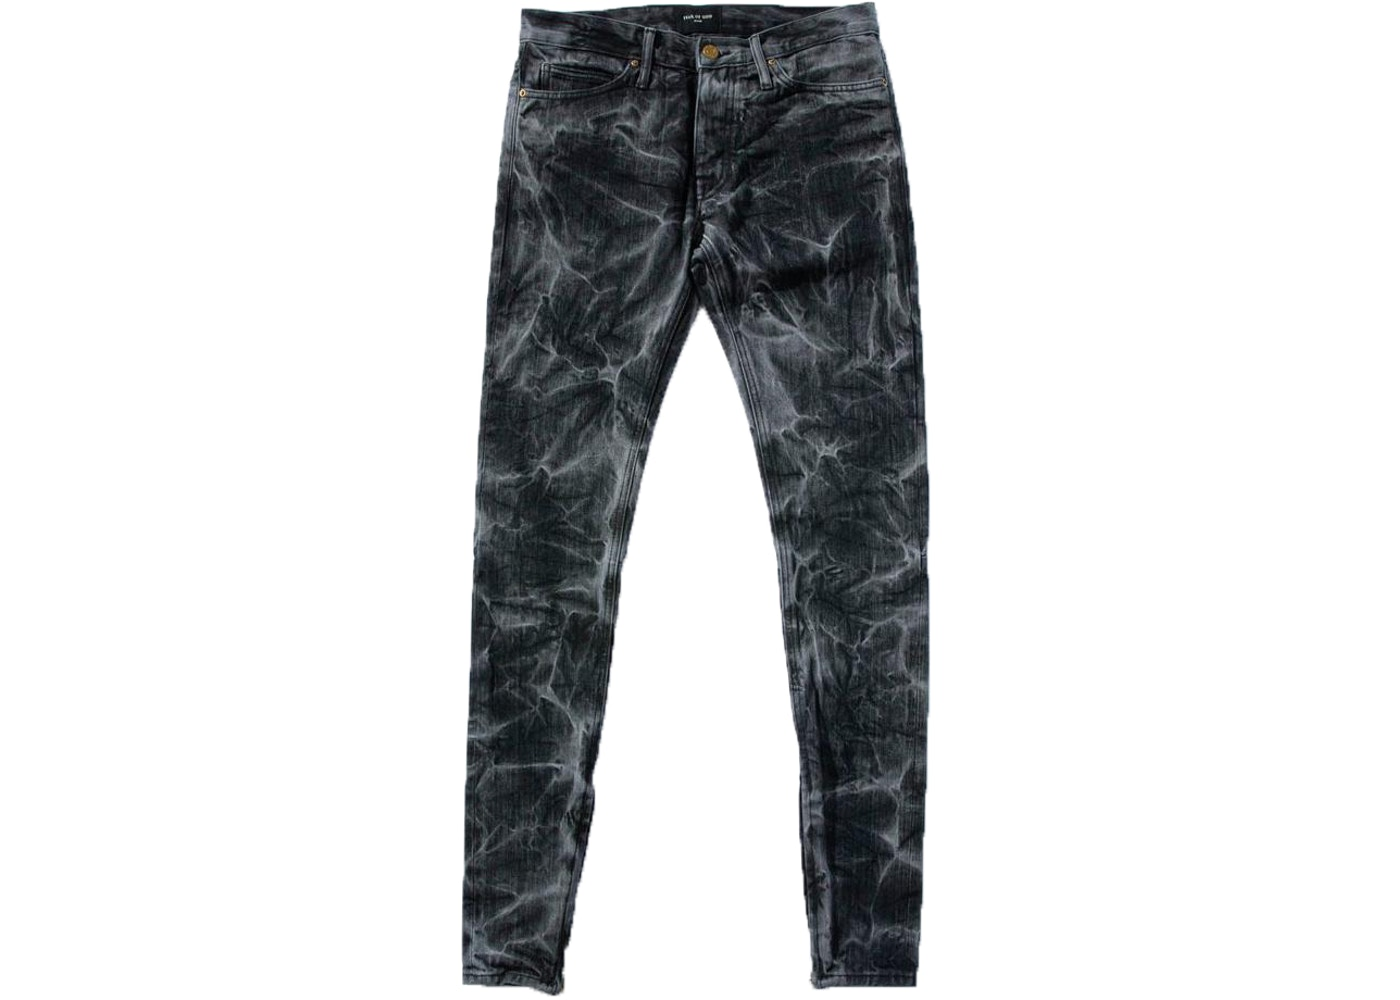 edf728bb Sell. or Ask. Size: 31. View All Bids. FEAR OF GOD Selvedge Denim Holy  Water Denim Jeans Black